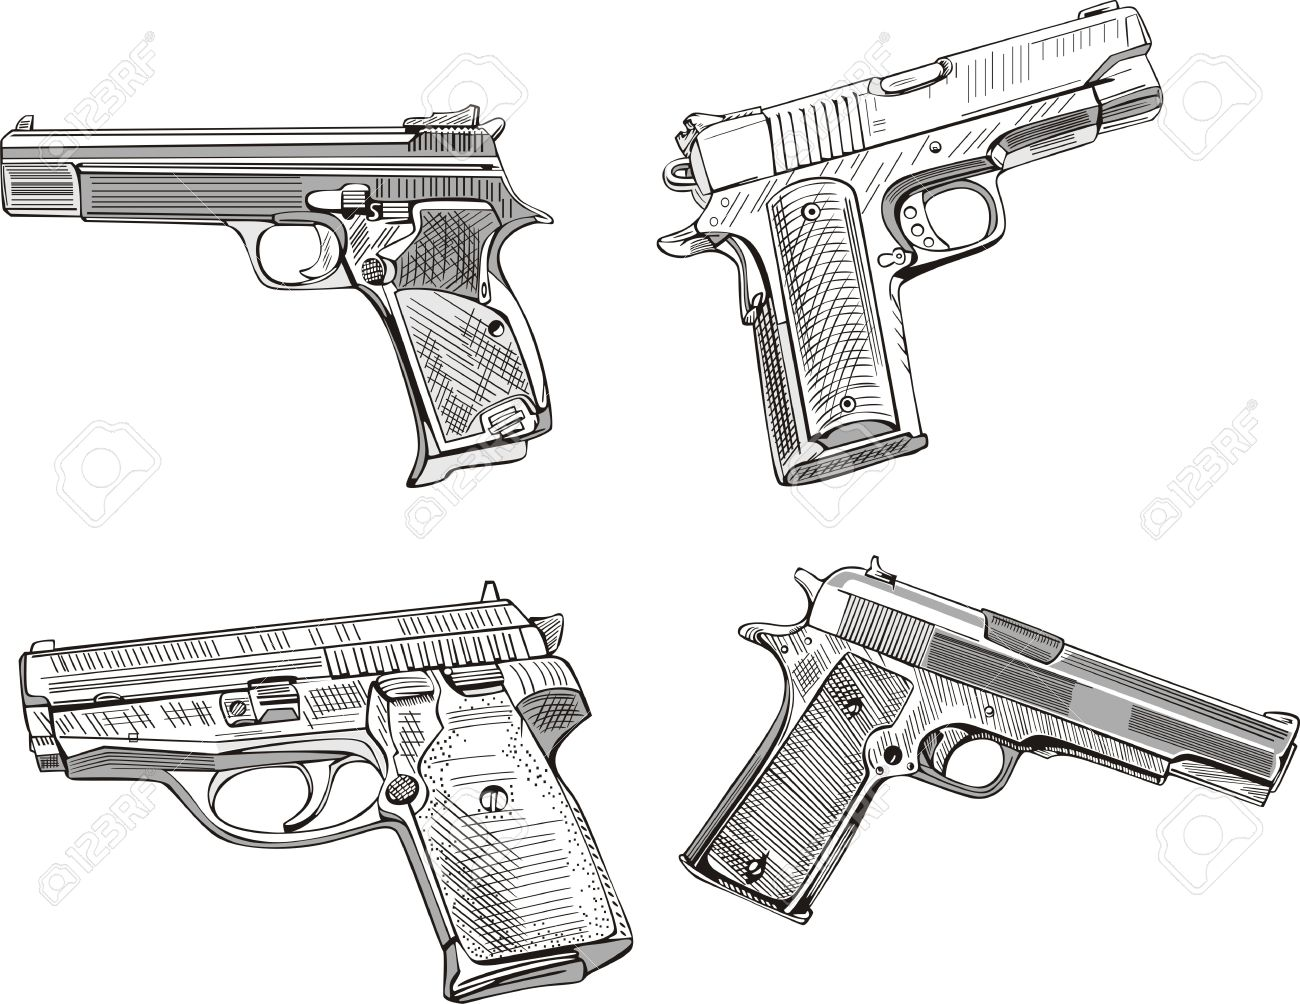 Pistol sketches set of black and white vector illustrations stock vector 14744907